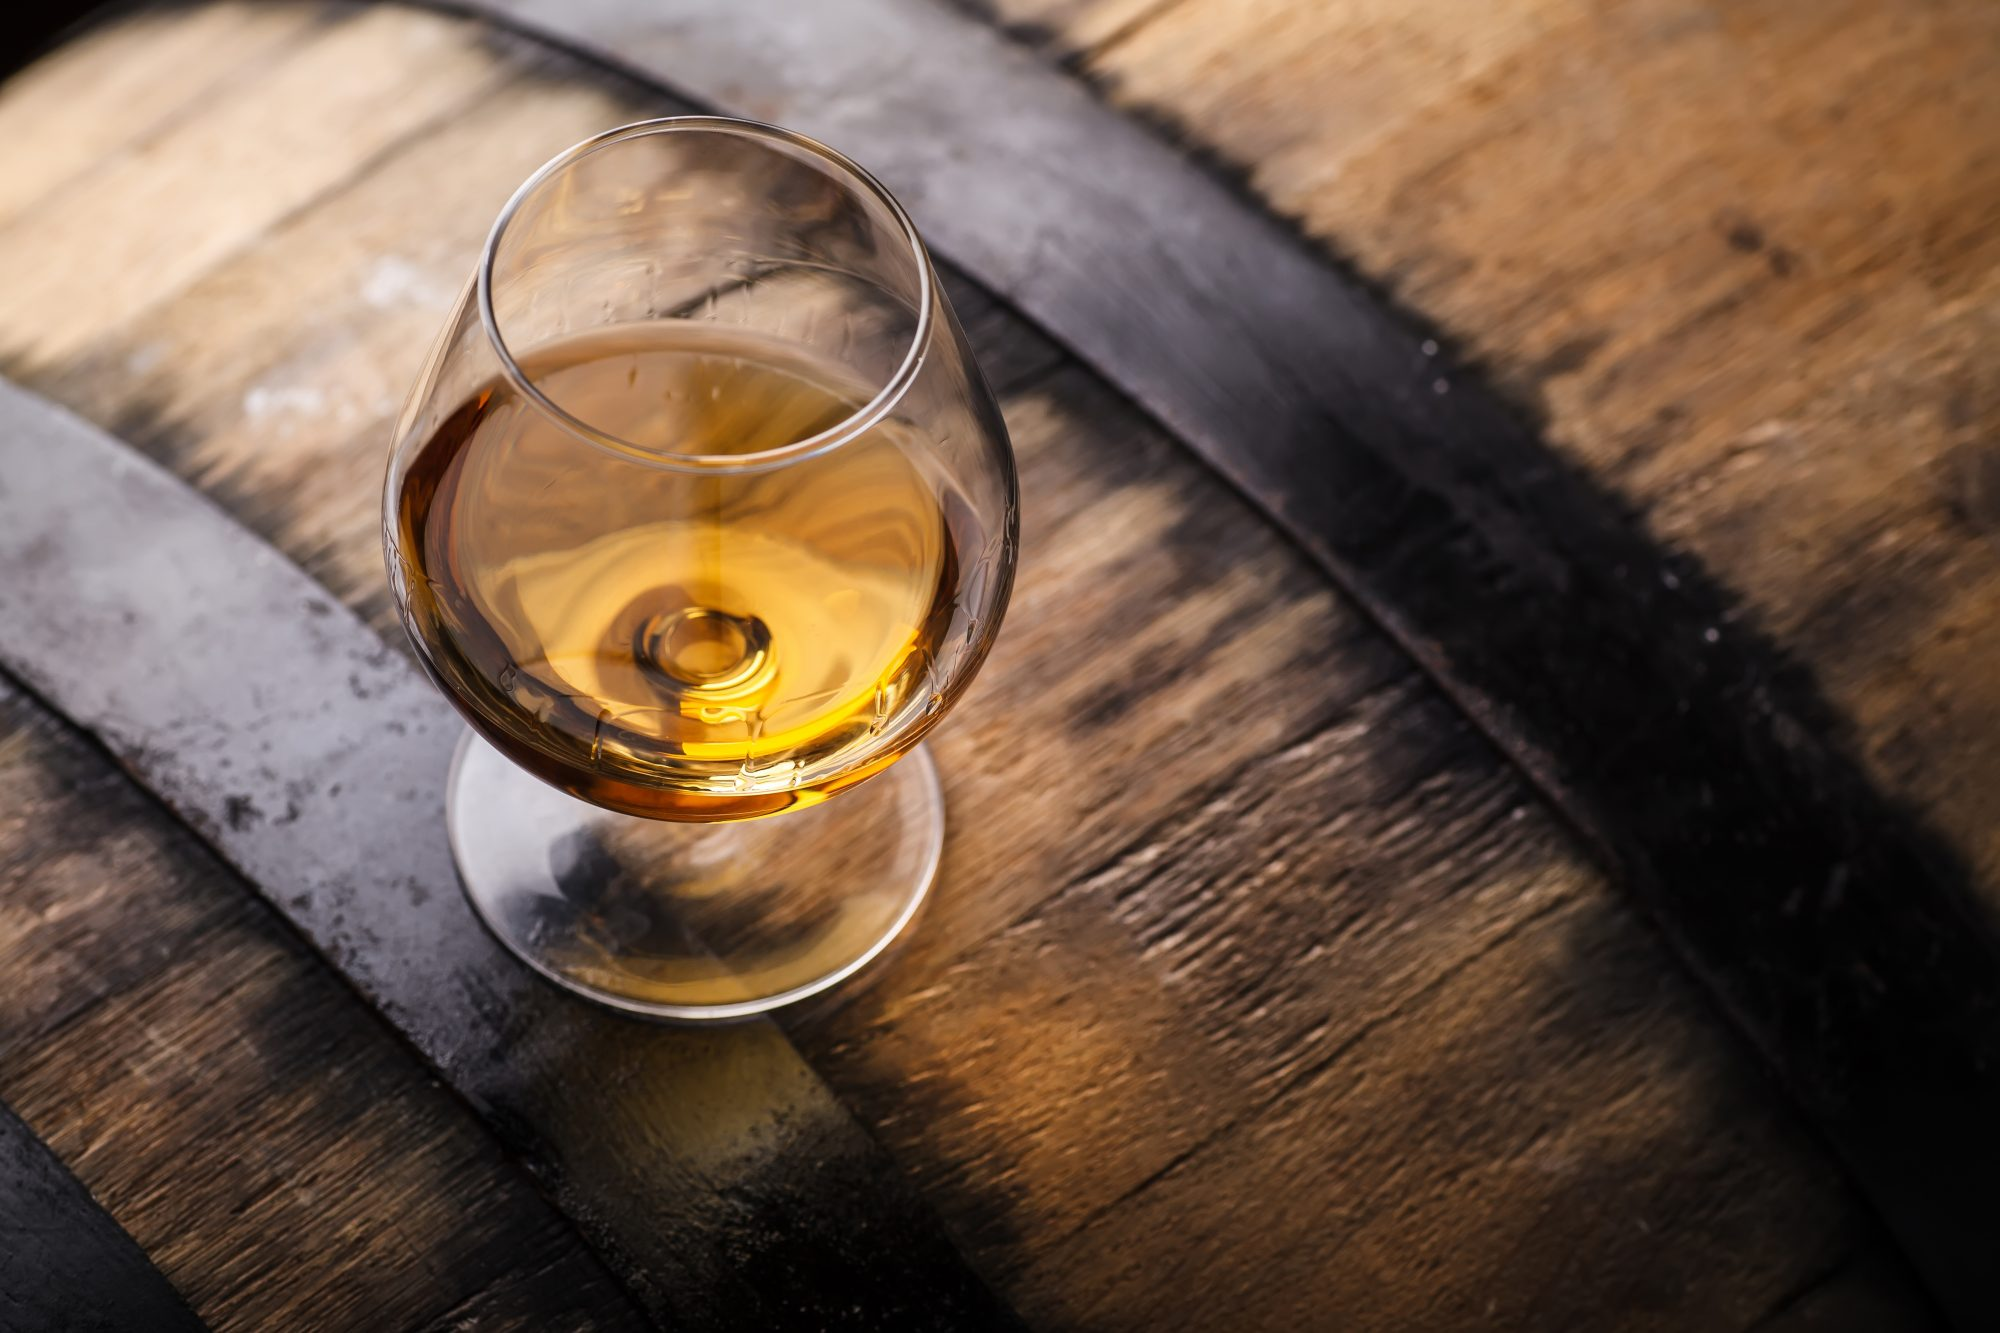 Is Whiskey Evaporation Bad For The Environment? A Scottish Politician Wants To Know